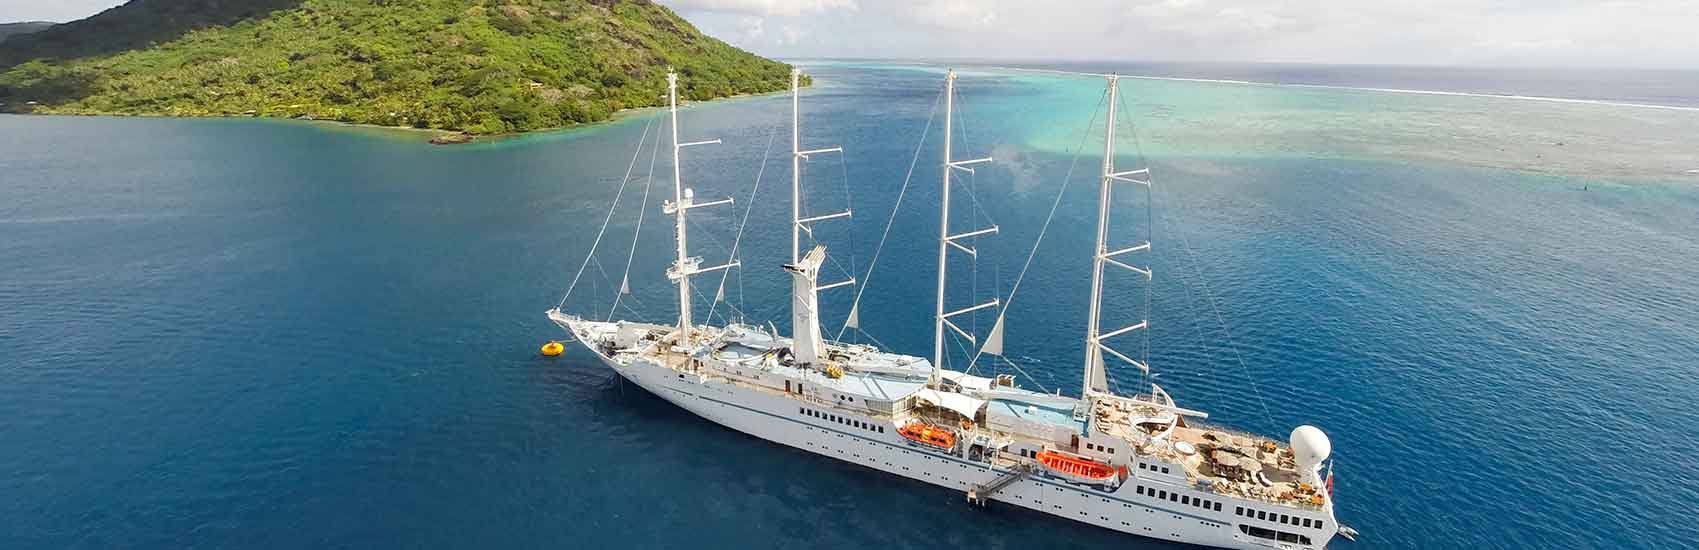 Discover Tahiti in Private Yacht Style with Windstar